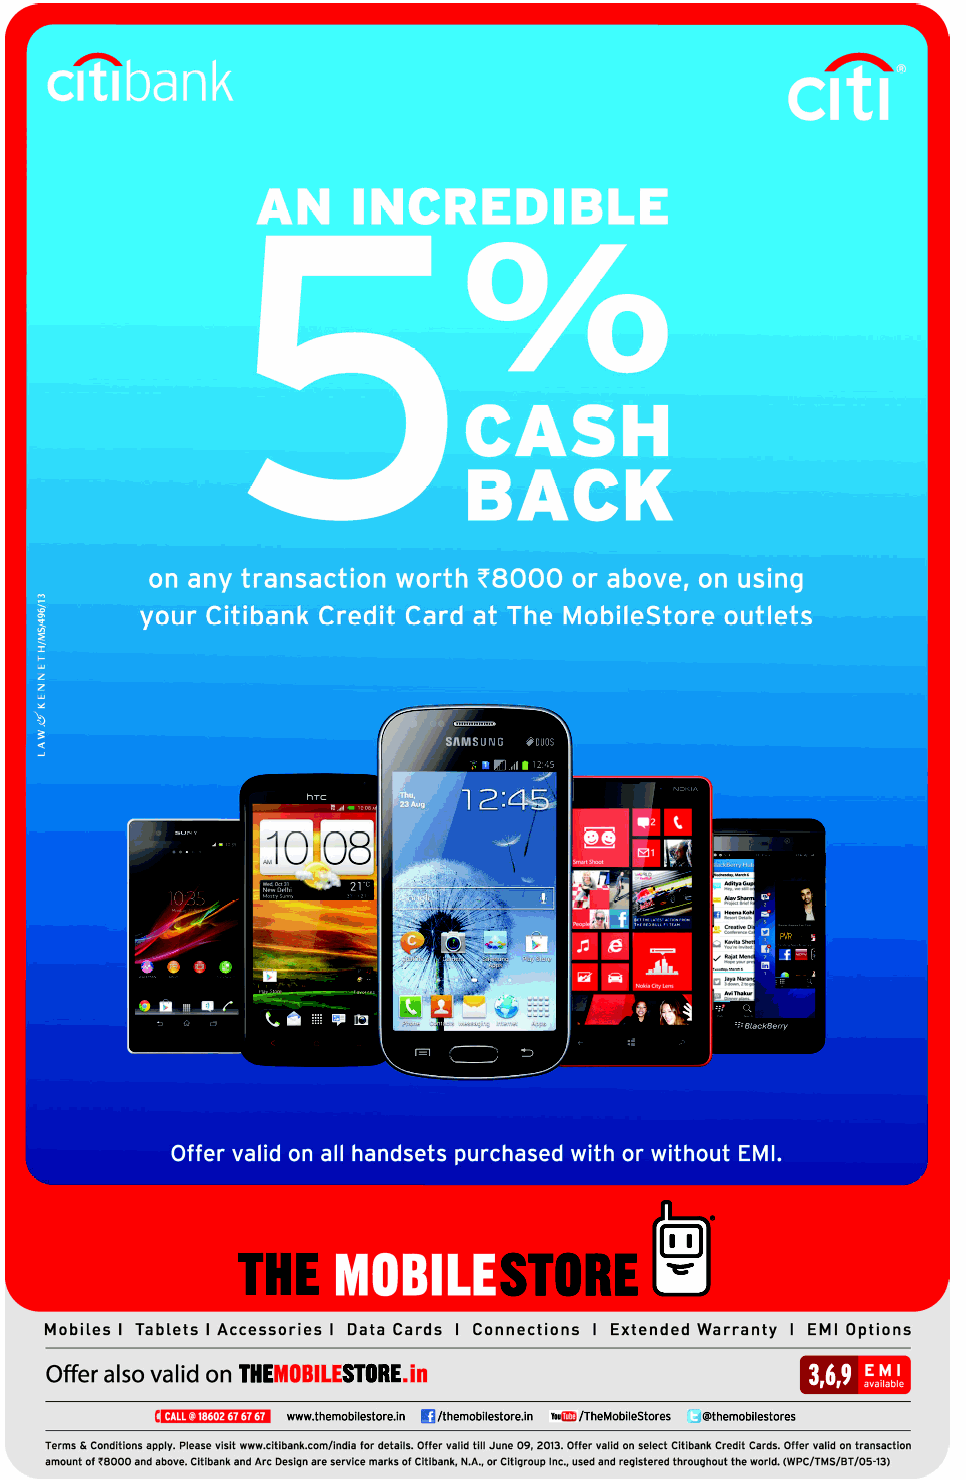 The Mobile Store - 5% Cash Back Offer